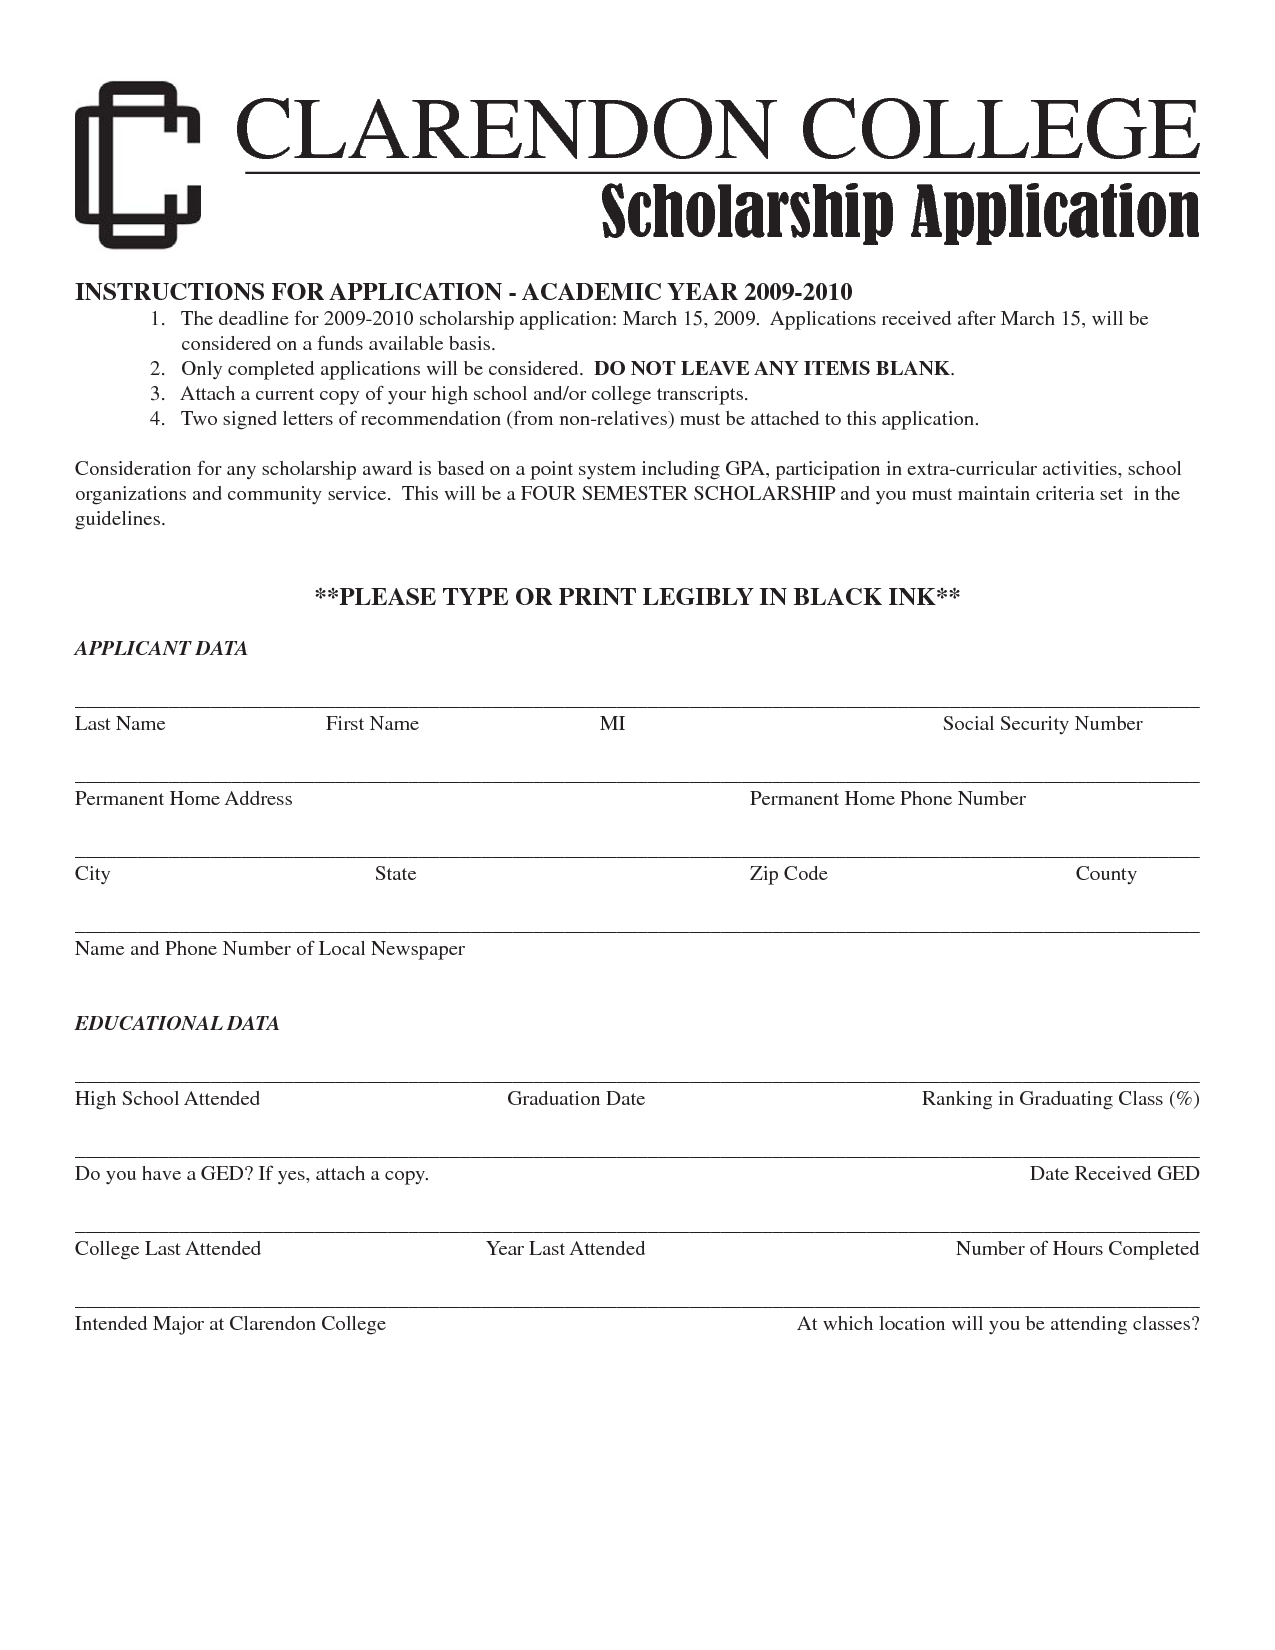 How to write a financial aid letter for a scholarship